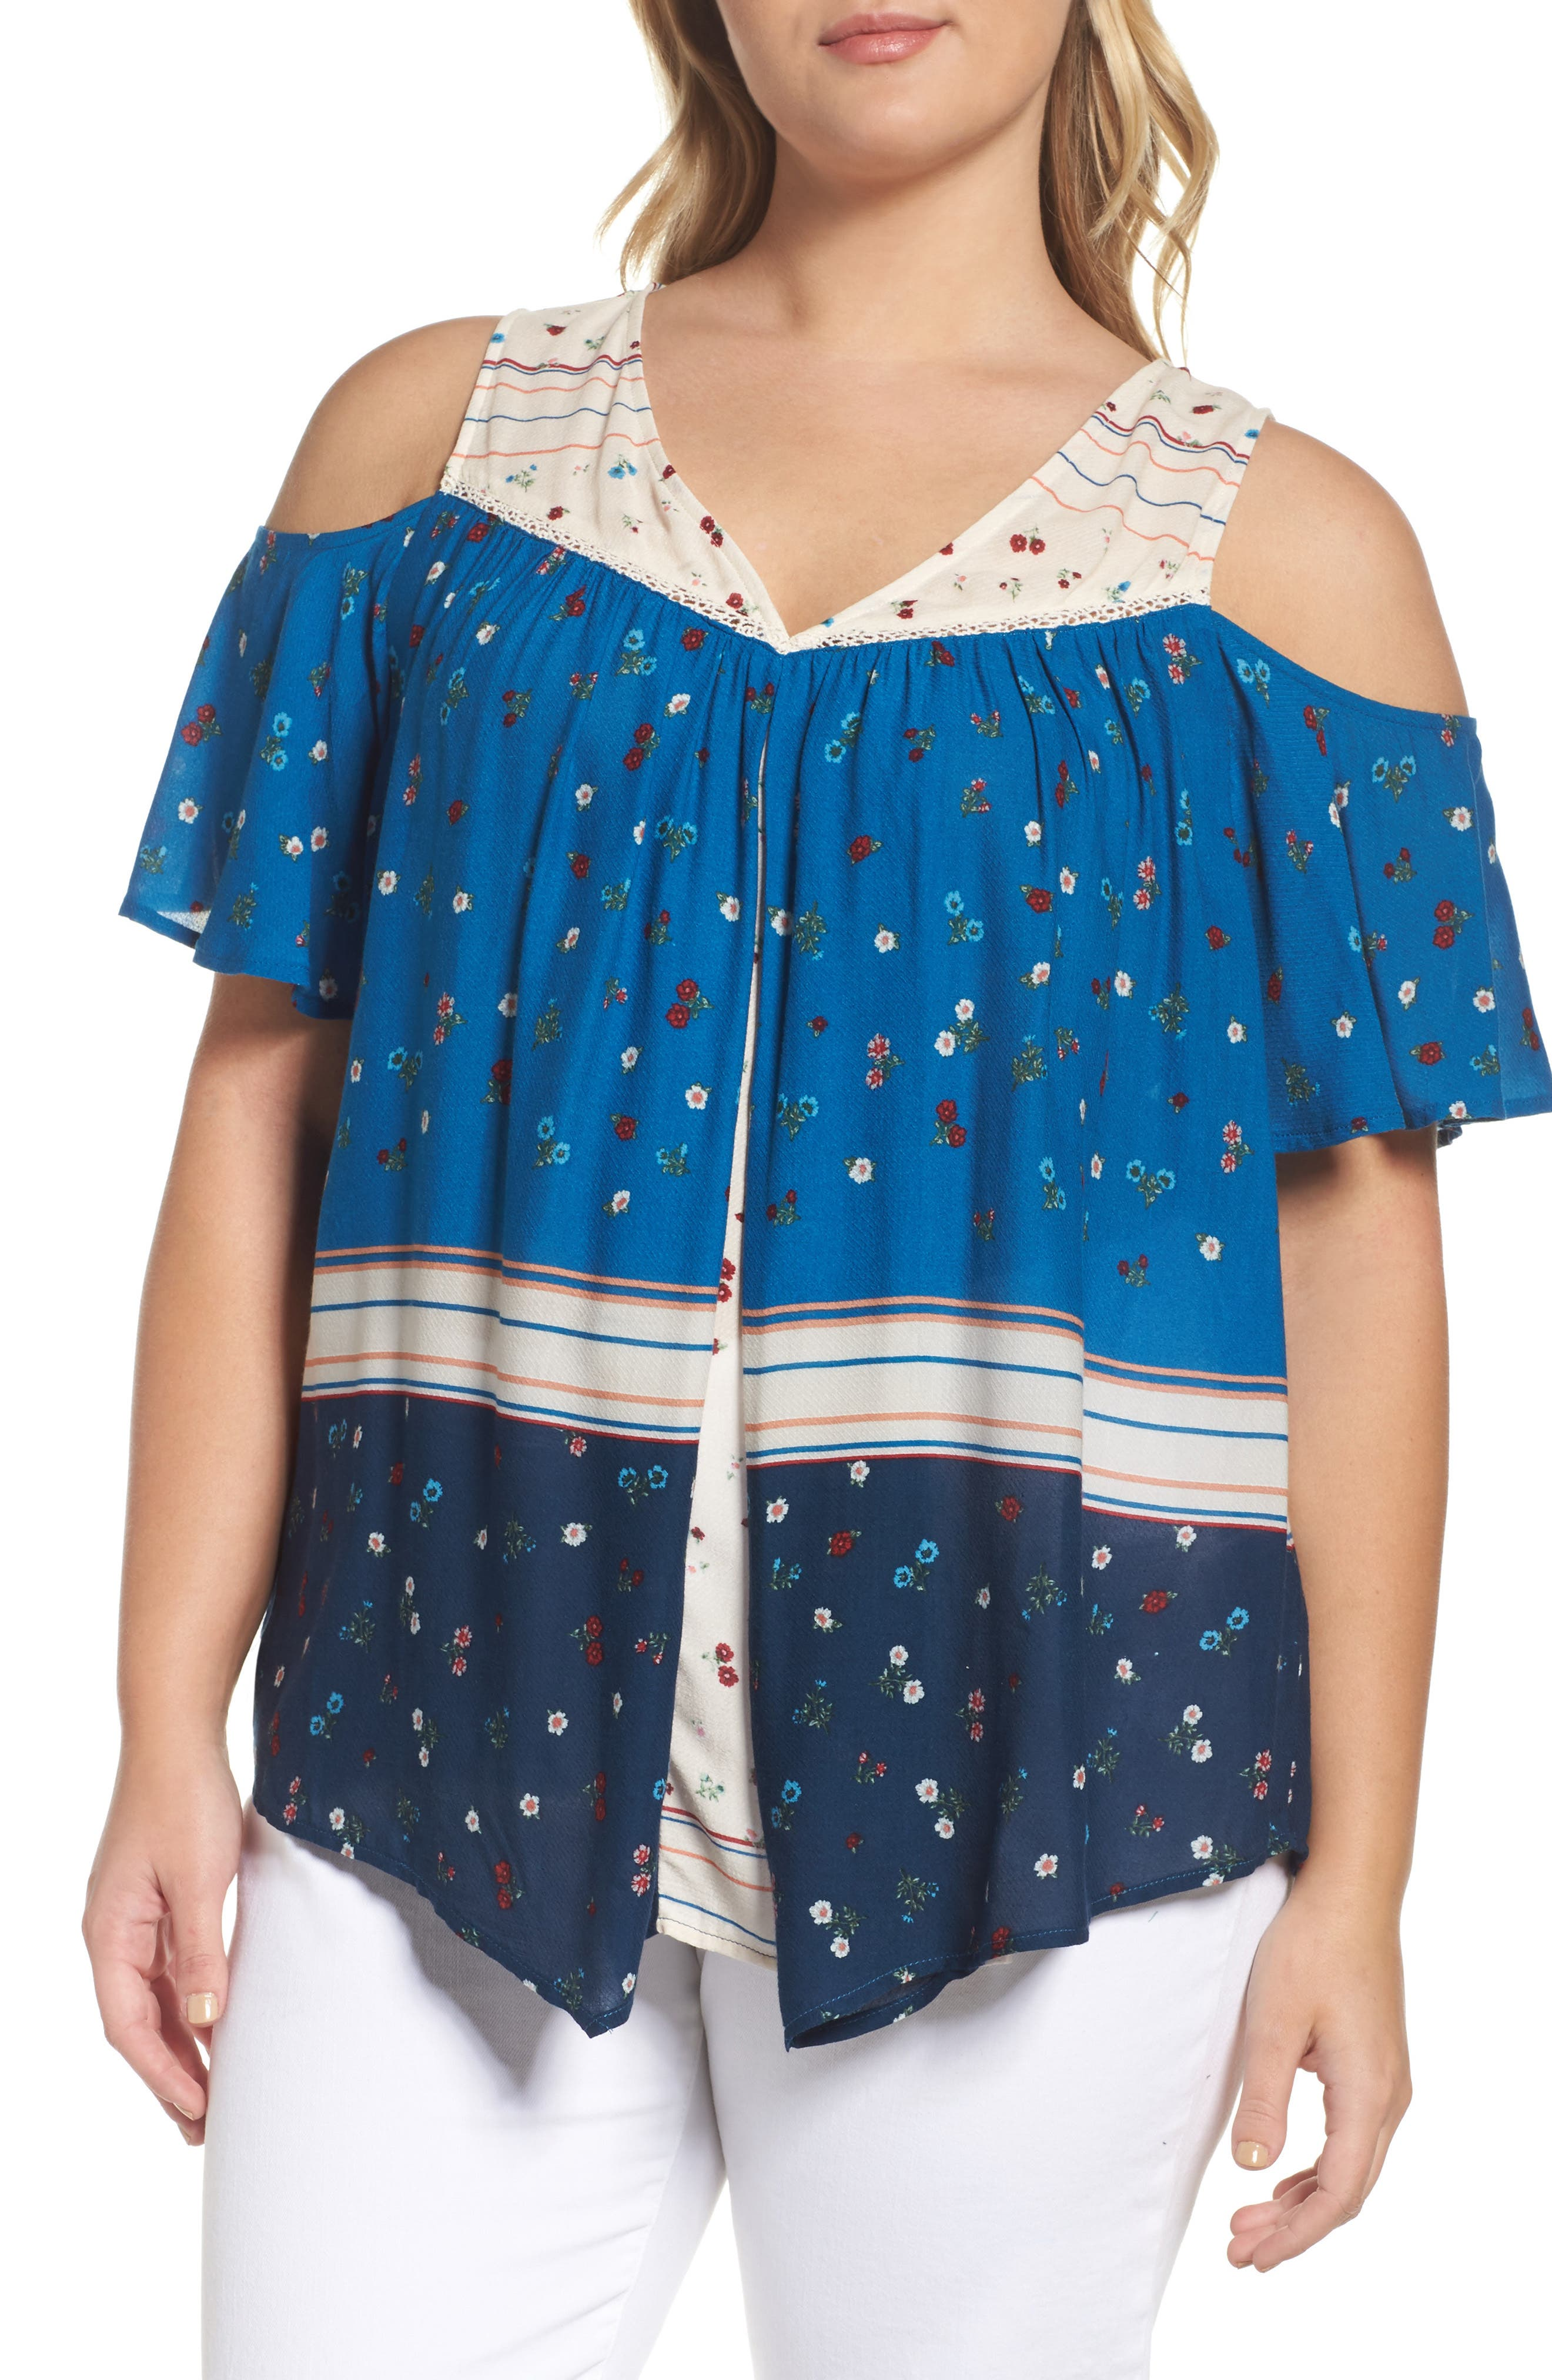 Alternate Image 1 Selected - Wit & Wisdom Pleat Cold Shoulder Top (Plus Size) (Nordstrom Exclusive)